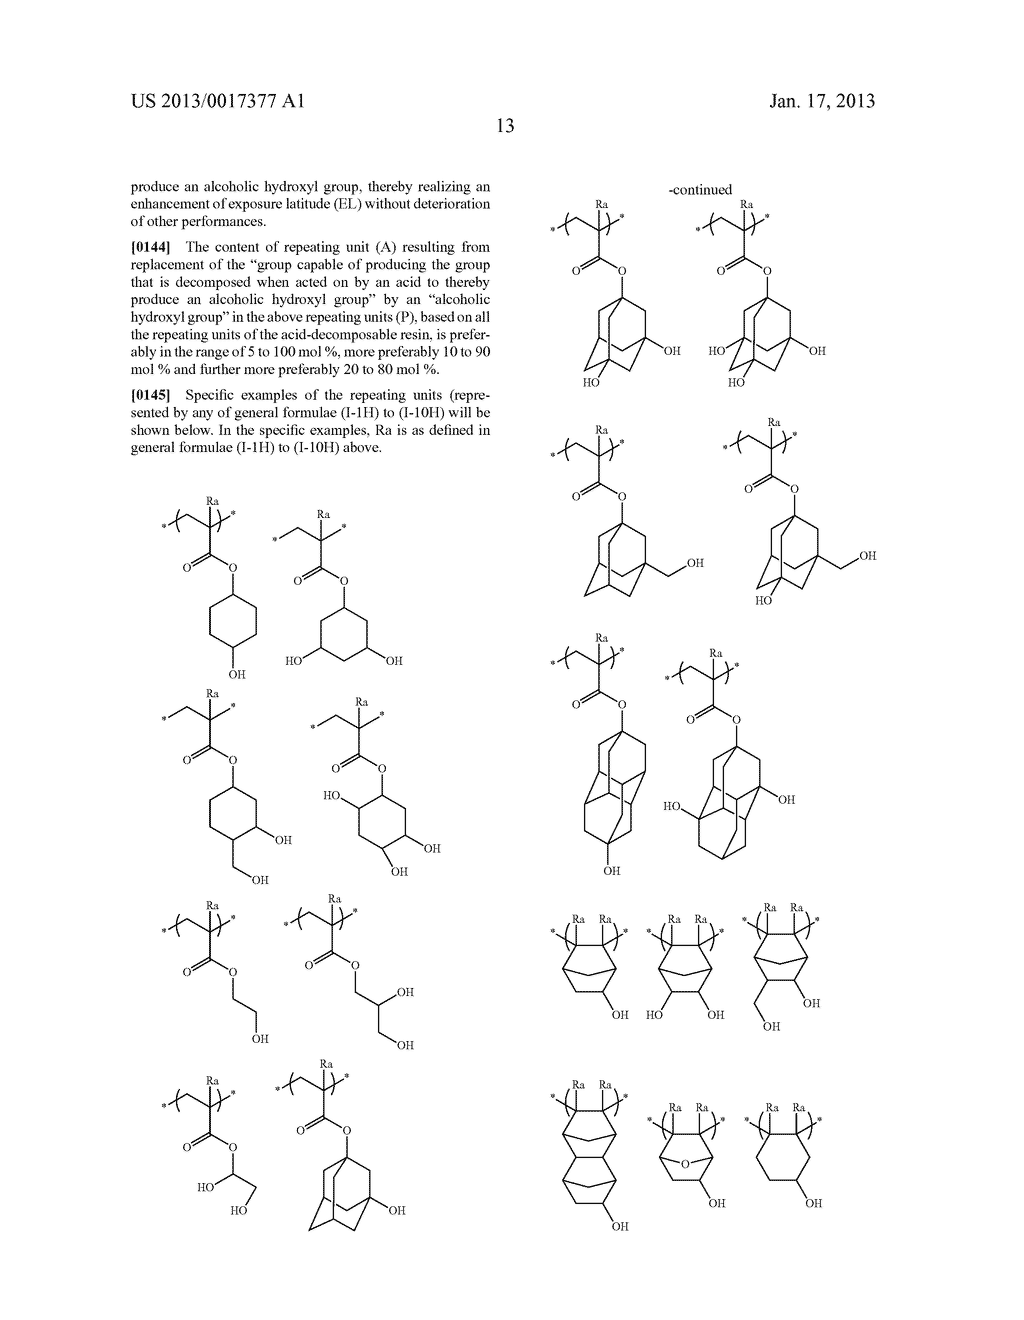 ACTINIC-RAY- OR RADIATION-SENSITIVE RESIN COMPOSITION AND METHOD OF     FORMING PATTERN USING THE SAMEAANM Kataoka; ShoheiAACI ShizuokaAACO JPAAGP Kataoka; Shohei Shizuoka JPAANM Iwato; KaoruAACI ShizuokaAACO JPAAGP Iwato; Kaoru Shizuoka JPAANM Kamimura; SouAACI ShizuokaAACO JPAAGP Kamimura; Sou Shizuoka JPAANM Tsuchihashi; ToruAACI ShizuokaAACO JPAAGP Tsuchihashi; Toru Shizuoka JPAANM Enomoto; YuichiroAACI ShizuokaAACO JPAAGP Enomoto; Yuichiro Shizuoka JPAANM Fujii; KanaAACI ShizuokaAACO JPAAGP Fujii; Kana Shizuoka JPAANM Mizutani; KazuyoshiAACI ShizuokaAACO JPAAGP Mizutani; Kazuyoshi Shizuoka JPAANM Tarutani; ShinjiAACI ShizuokaAACO JPAAGP Tarutani; Shinji Shizuoka JPAANM Kato; KeitaAACI ShizuokaAACO JPAAGP Kato; Keita Shizuoka JP - diagram, schematic, and image 14